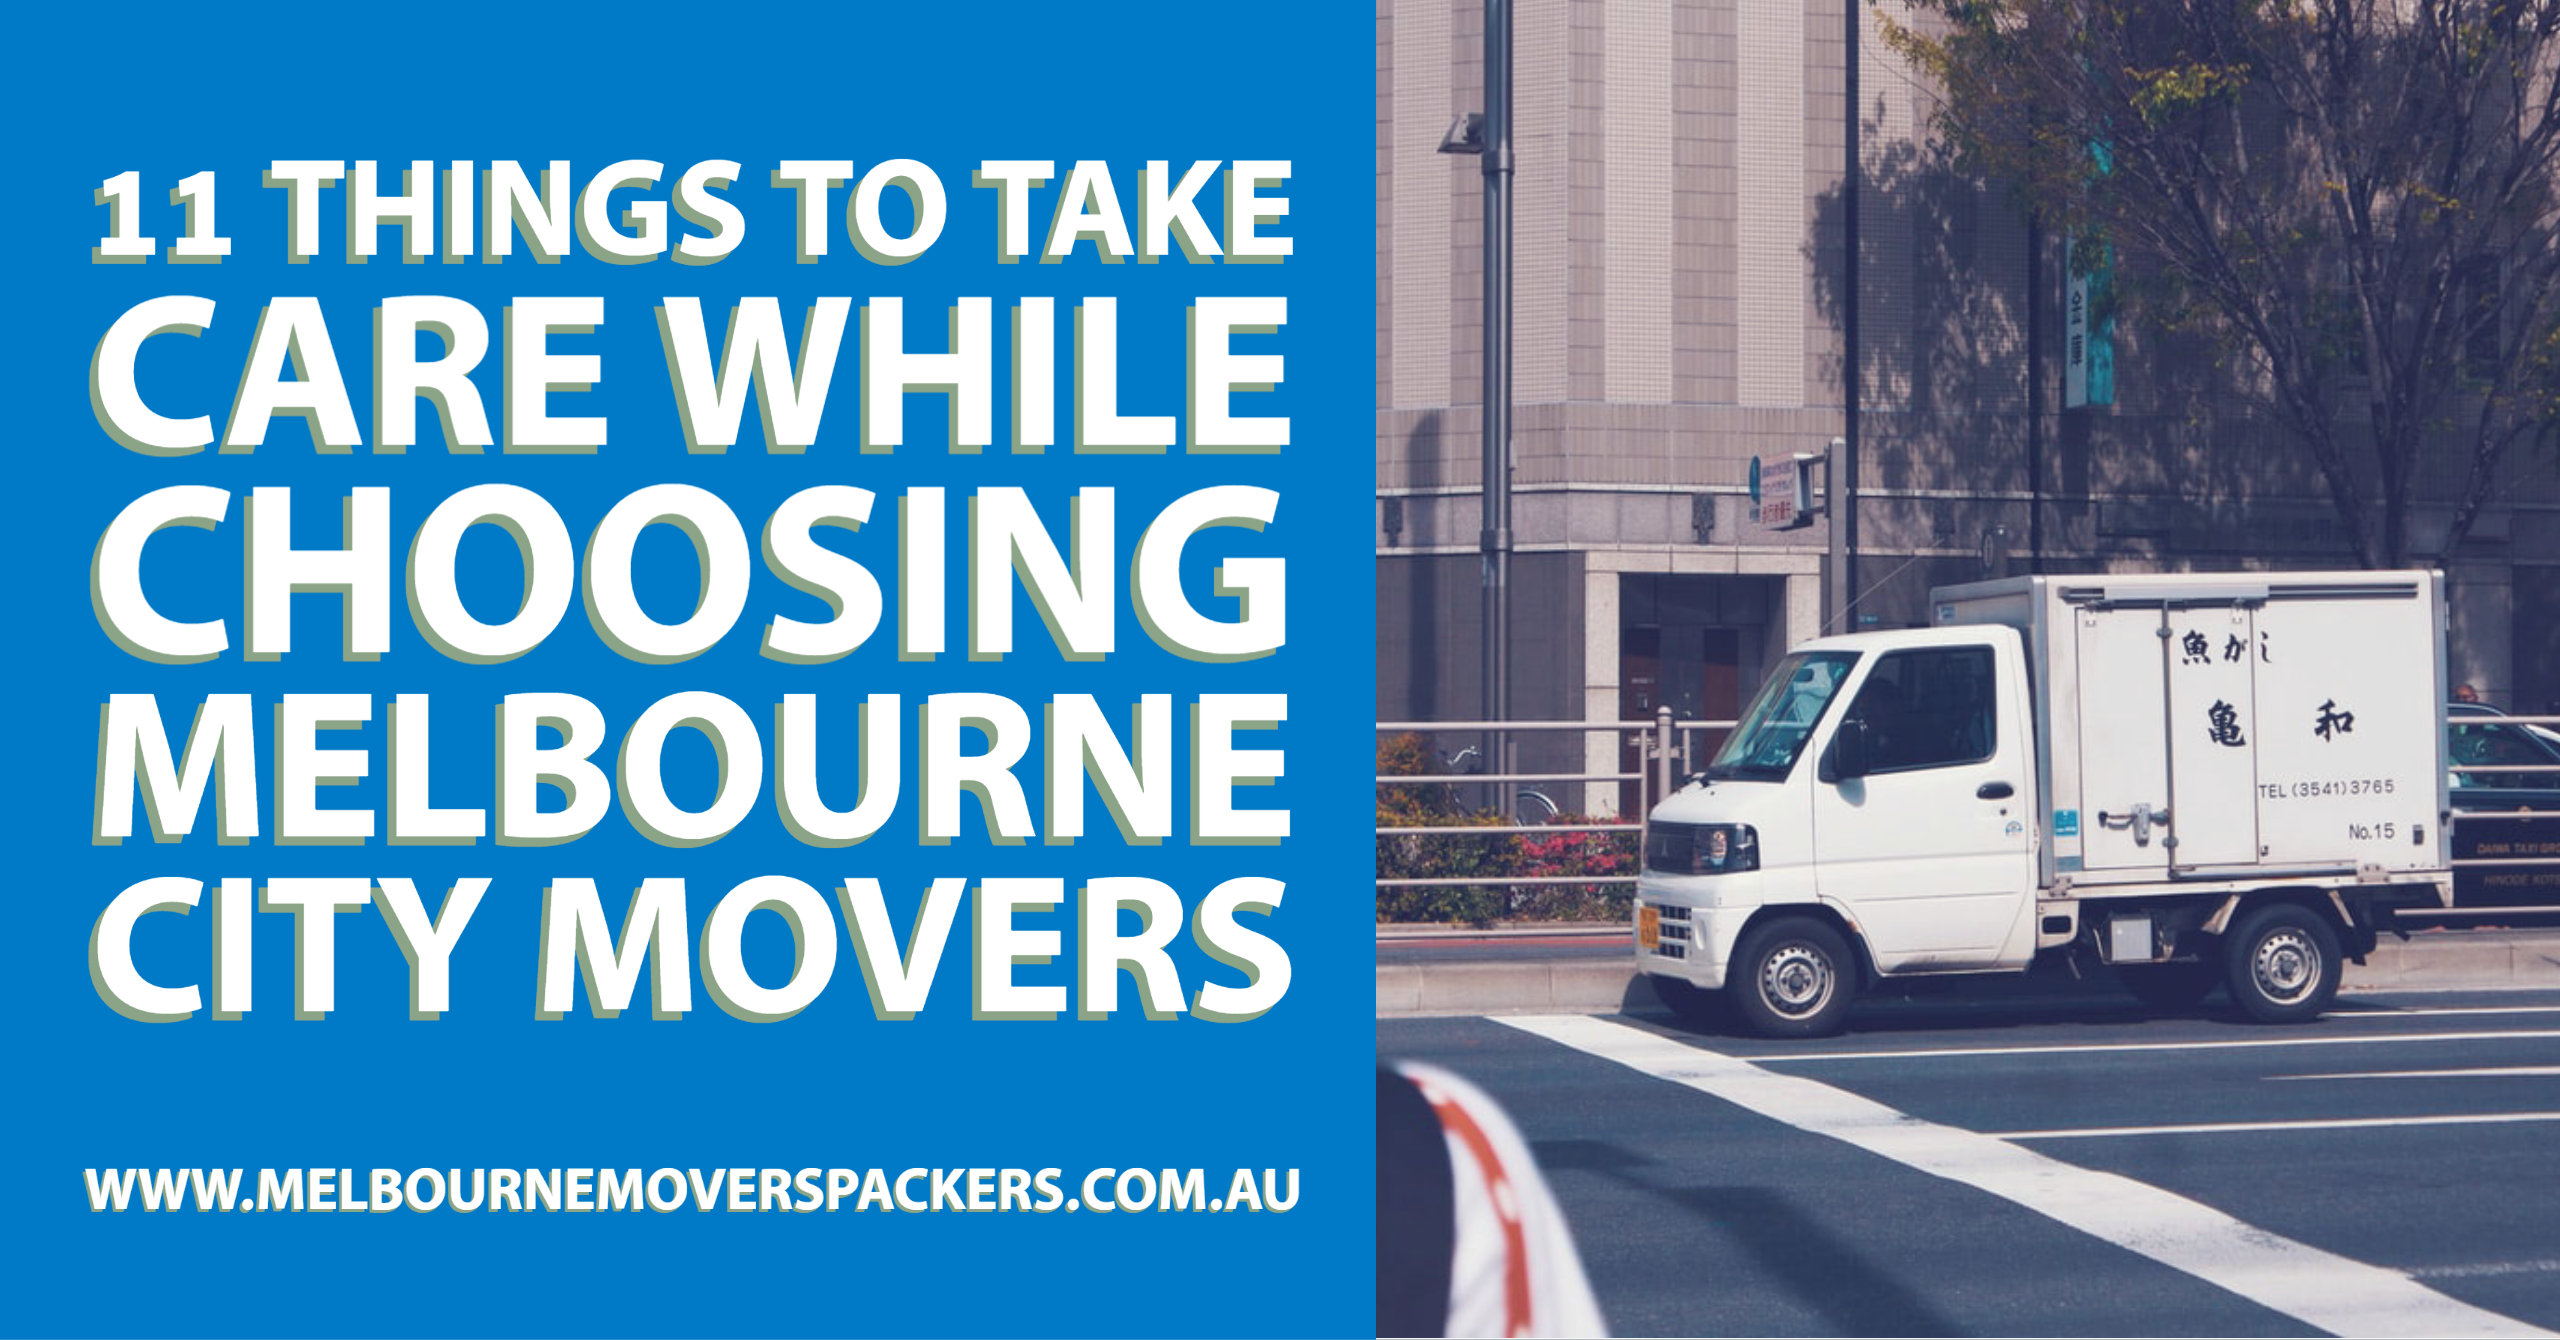 11 Things to Take Care While Choosing Melbourne City Movers